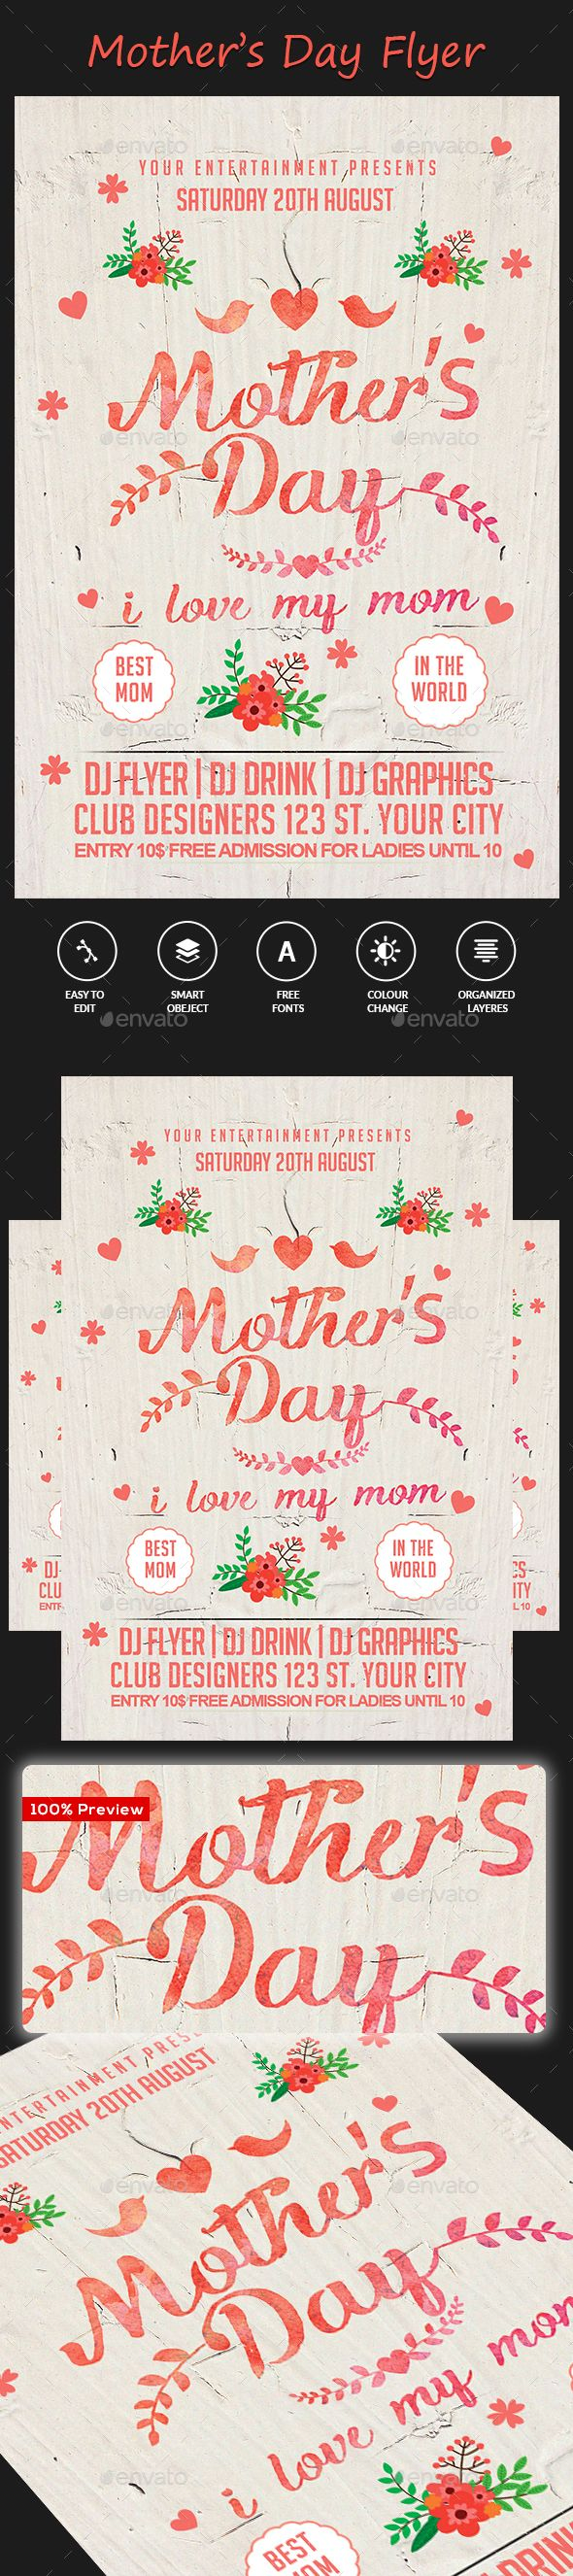 Mother's Day Flyer Template PSD. Download here: http://graphicriver.net/item/mothers-day-flyer-template/15932560?ref=ksioks